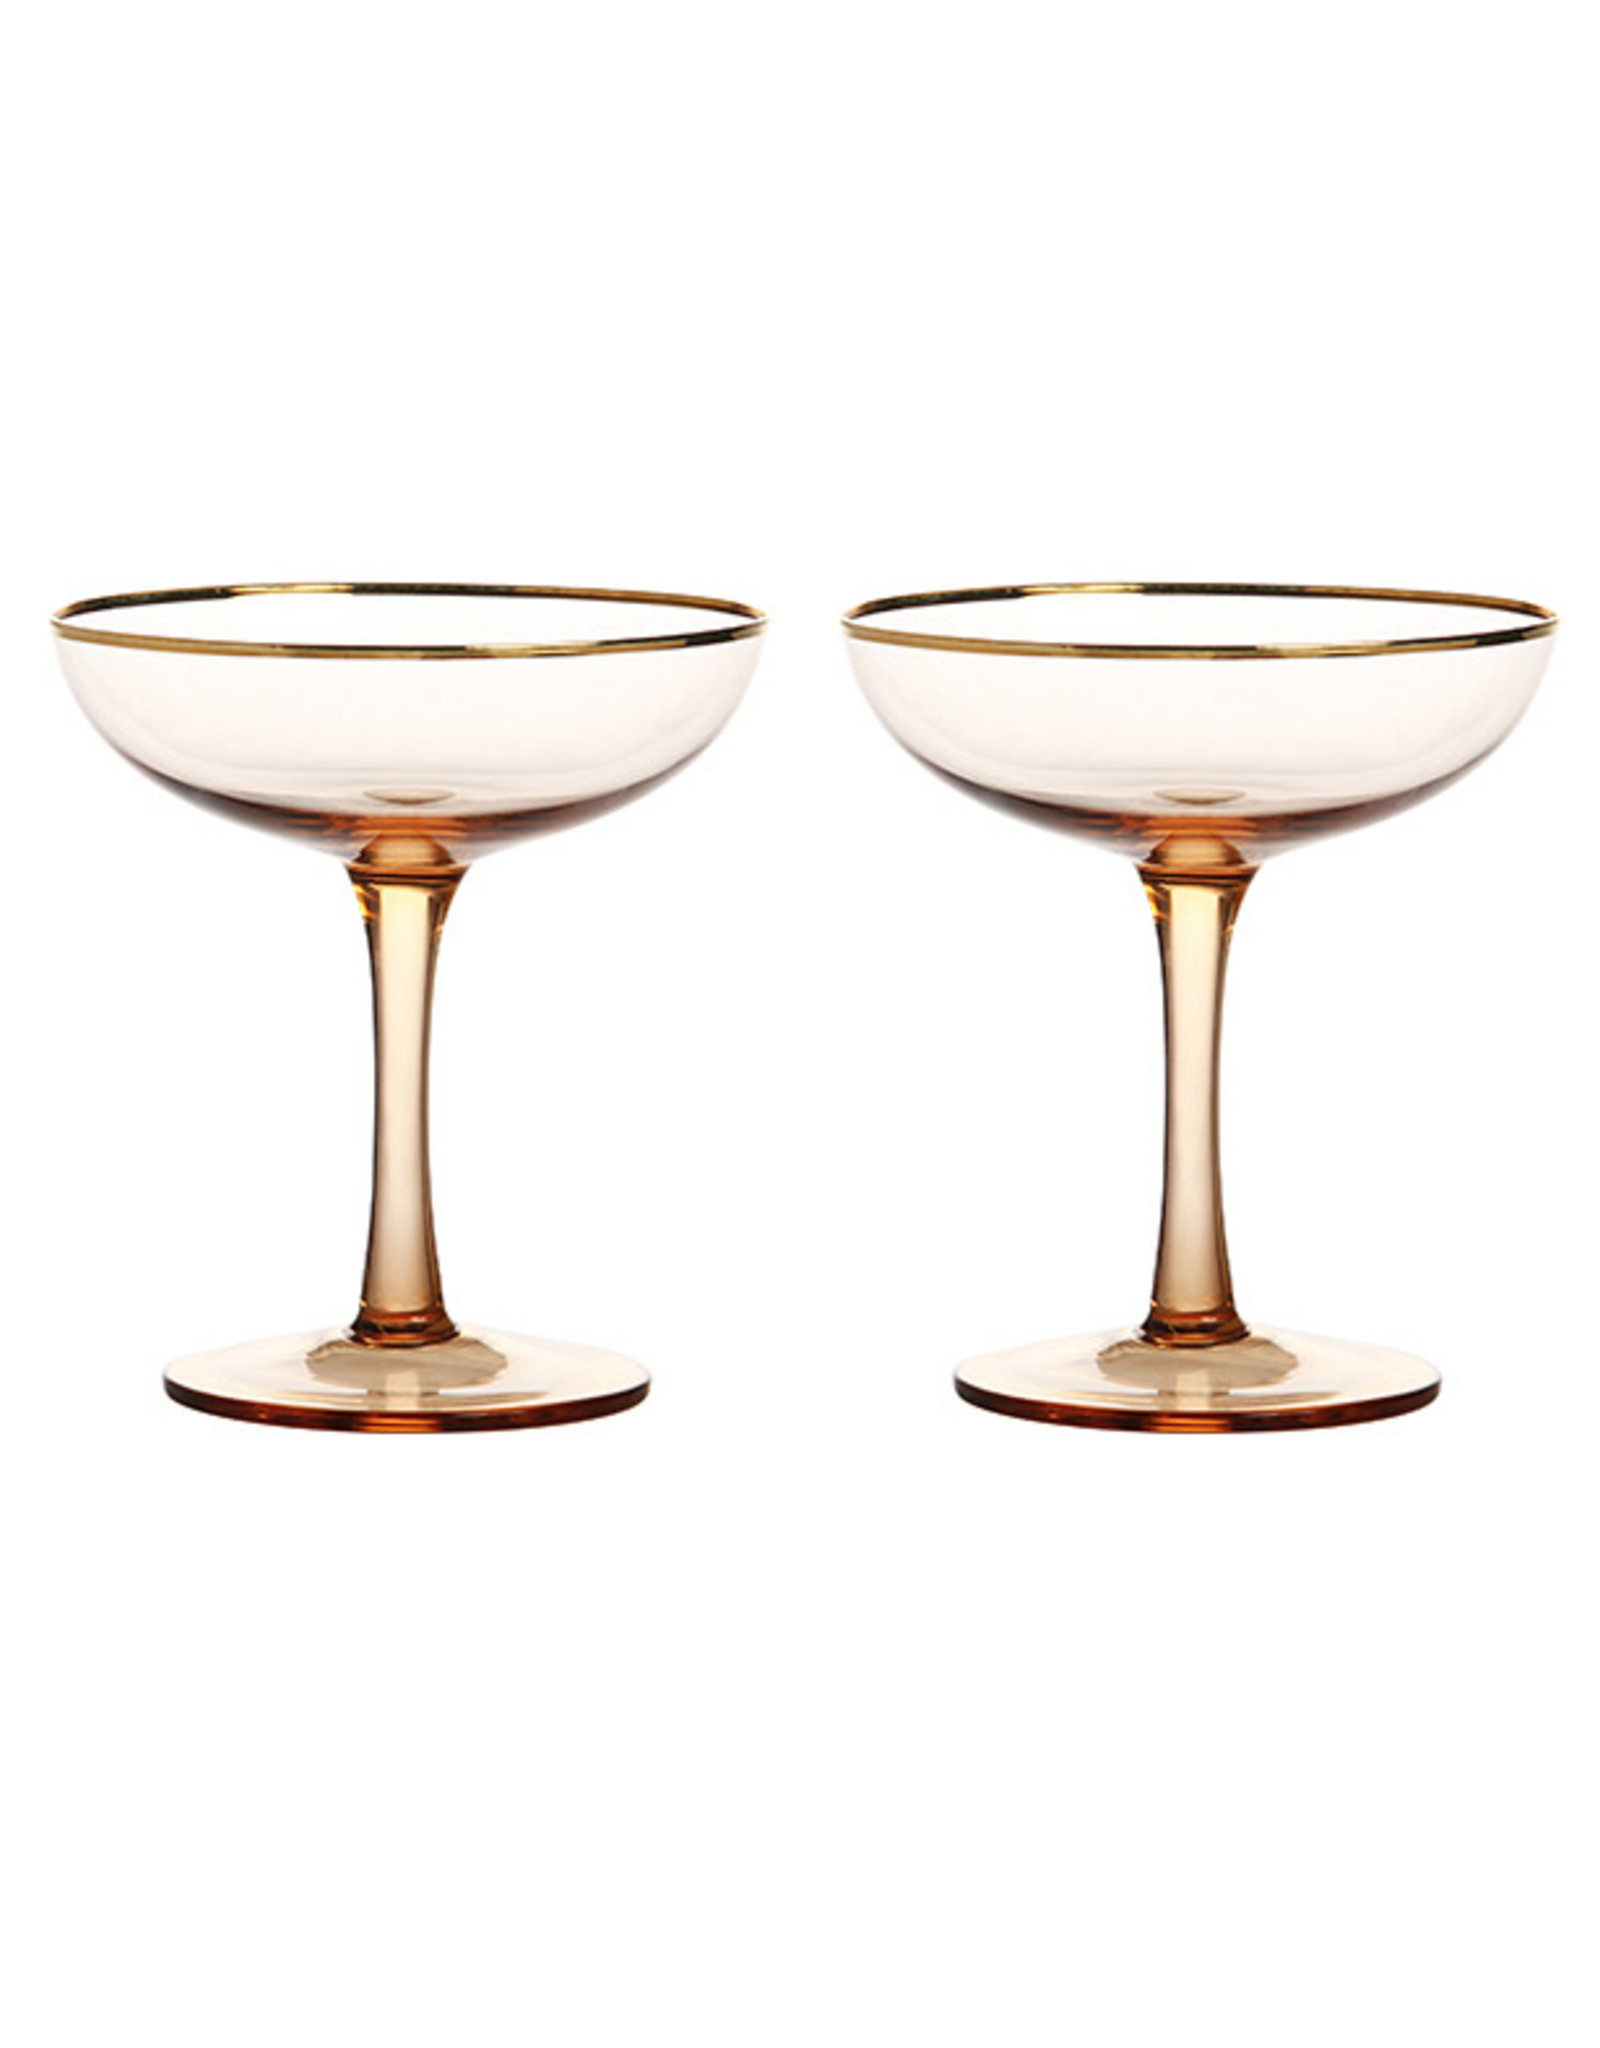 &Klevering Champagne coupe gold set of 2